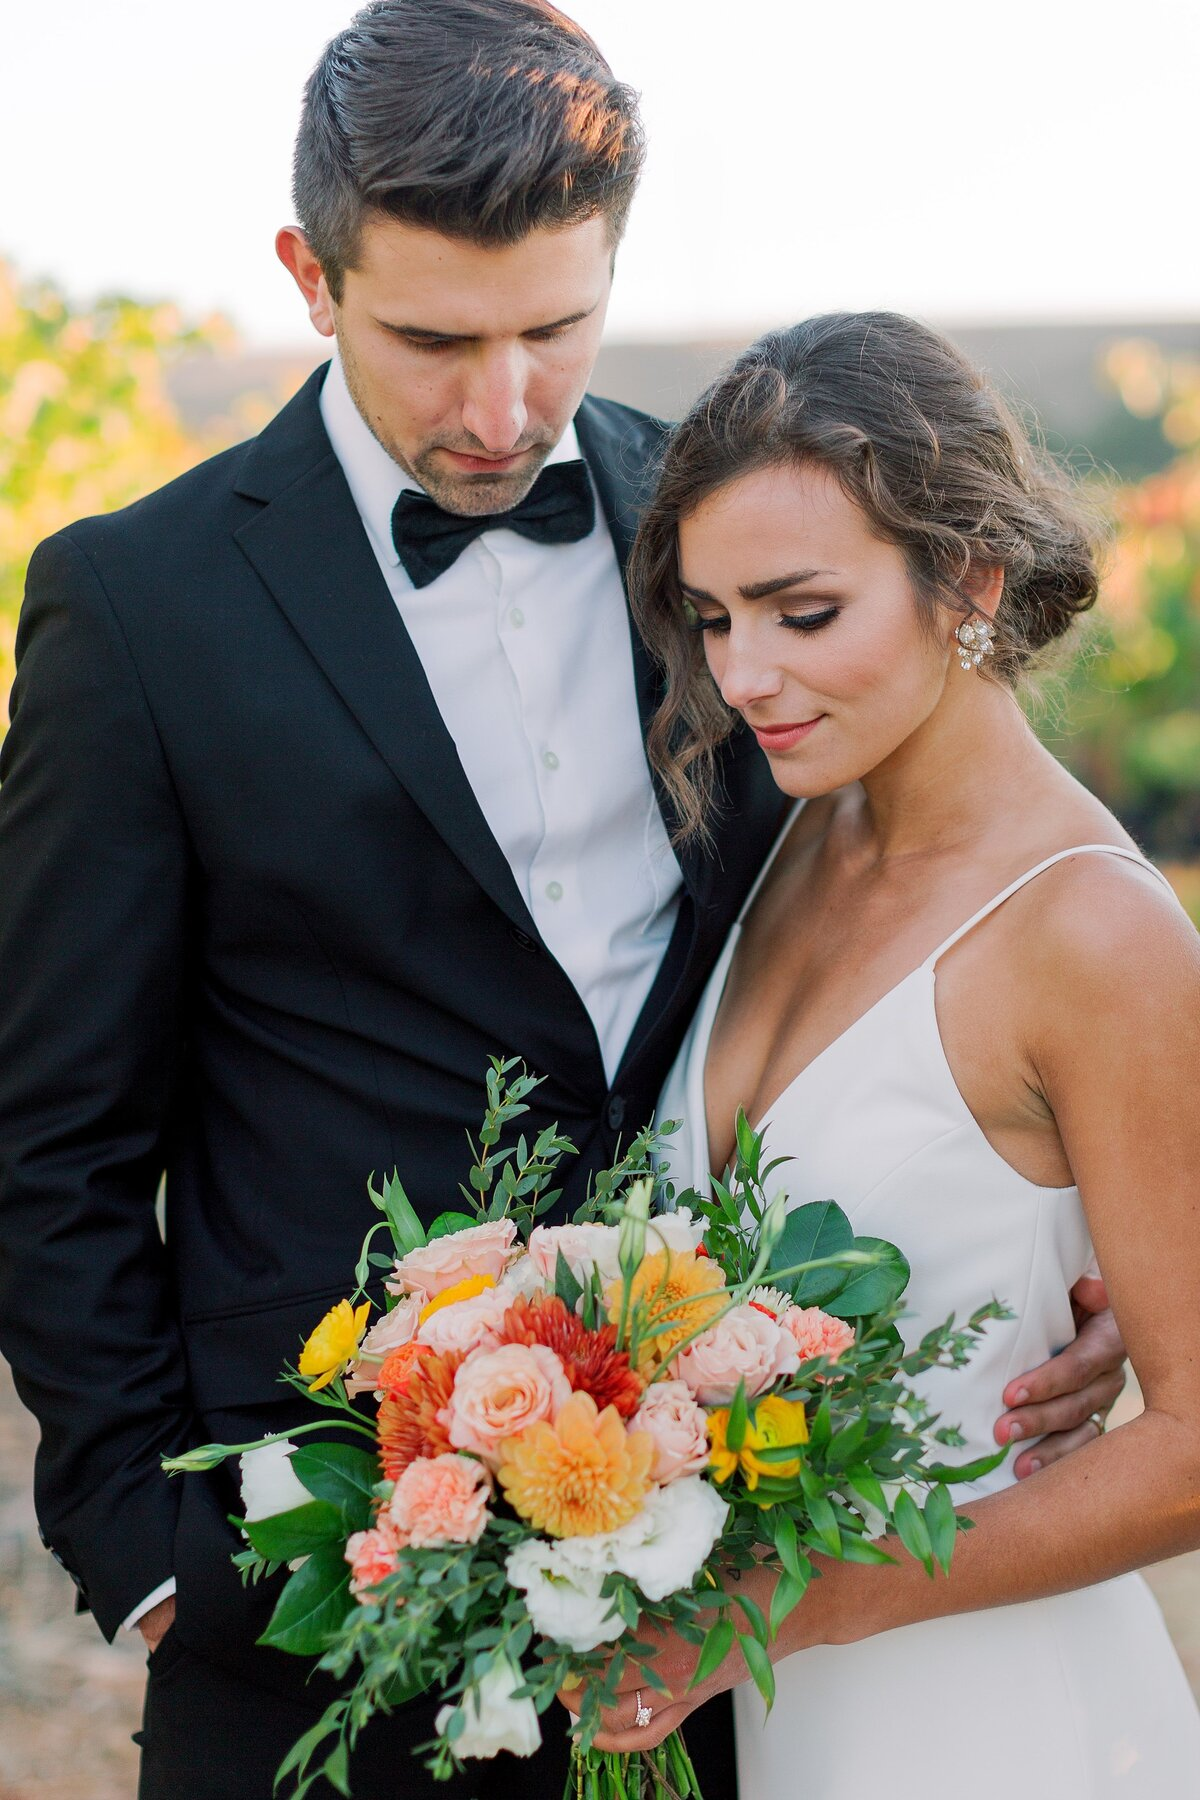 20191020 Modern Elegance Wedding Styled Shoot at Three Steves Winery Livermore_Bethany Picone Photography-165_WEB